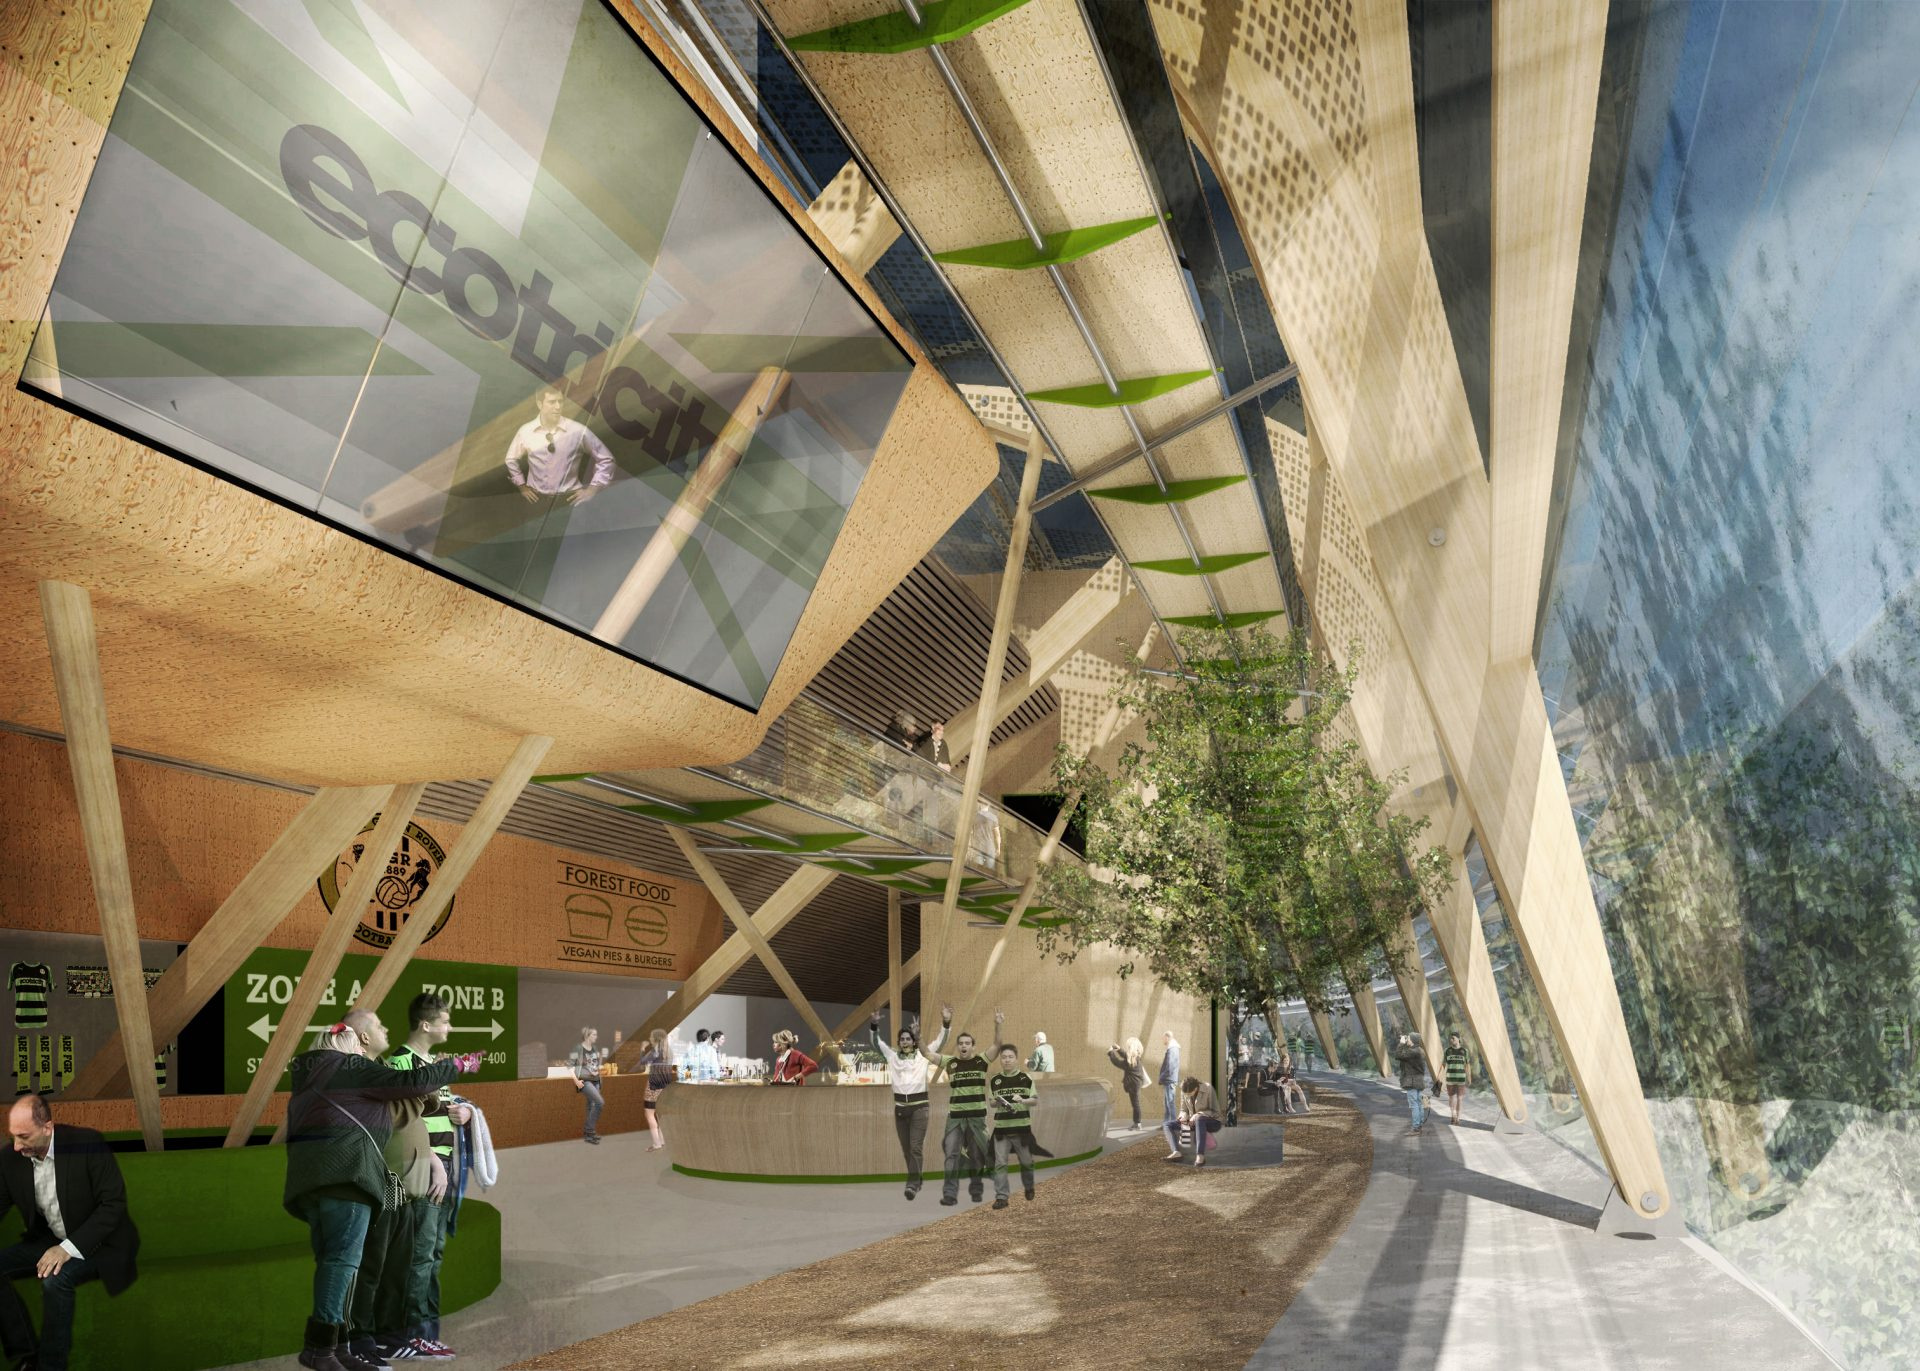 FGR Forest Green Rovers Ecotricity Eco Park Stadium Laminated Timber Frame Atrium Pods Trees